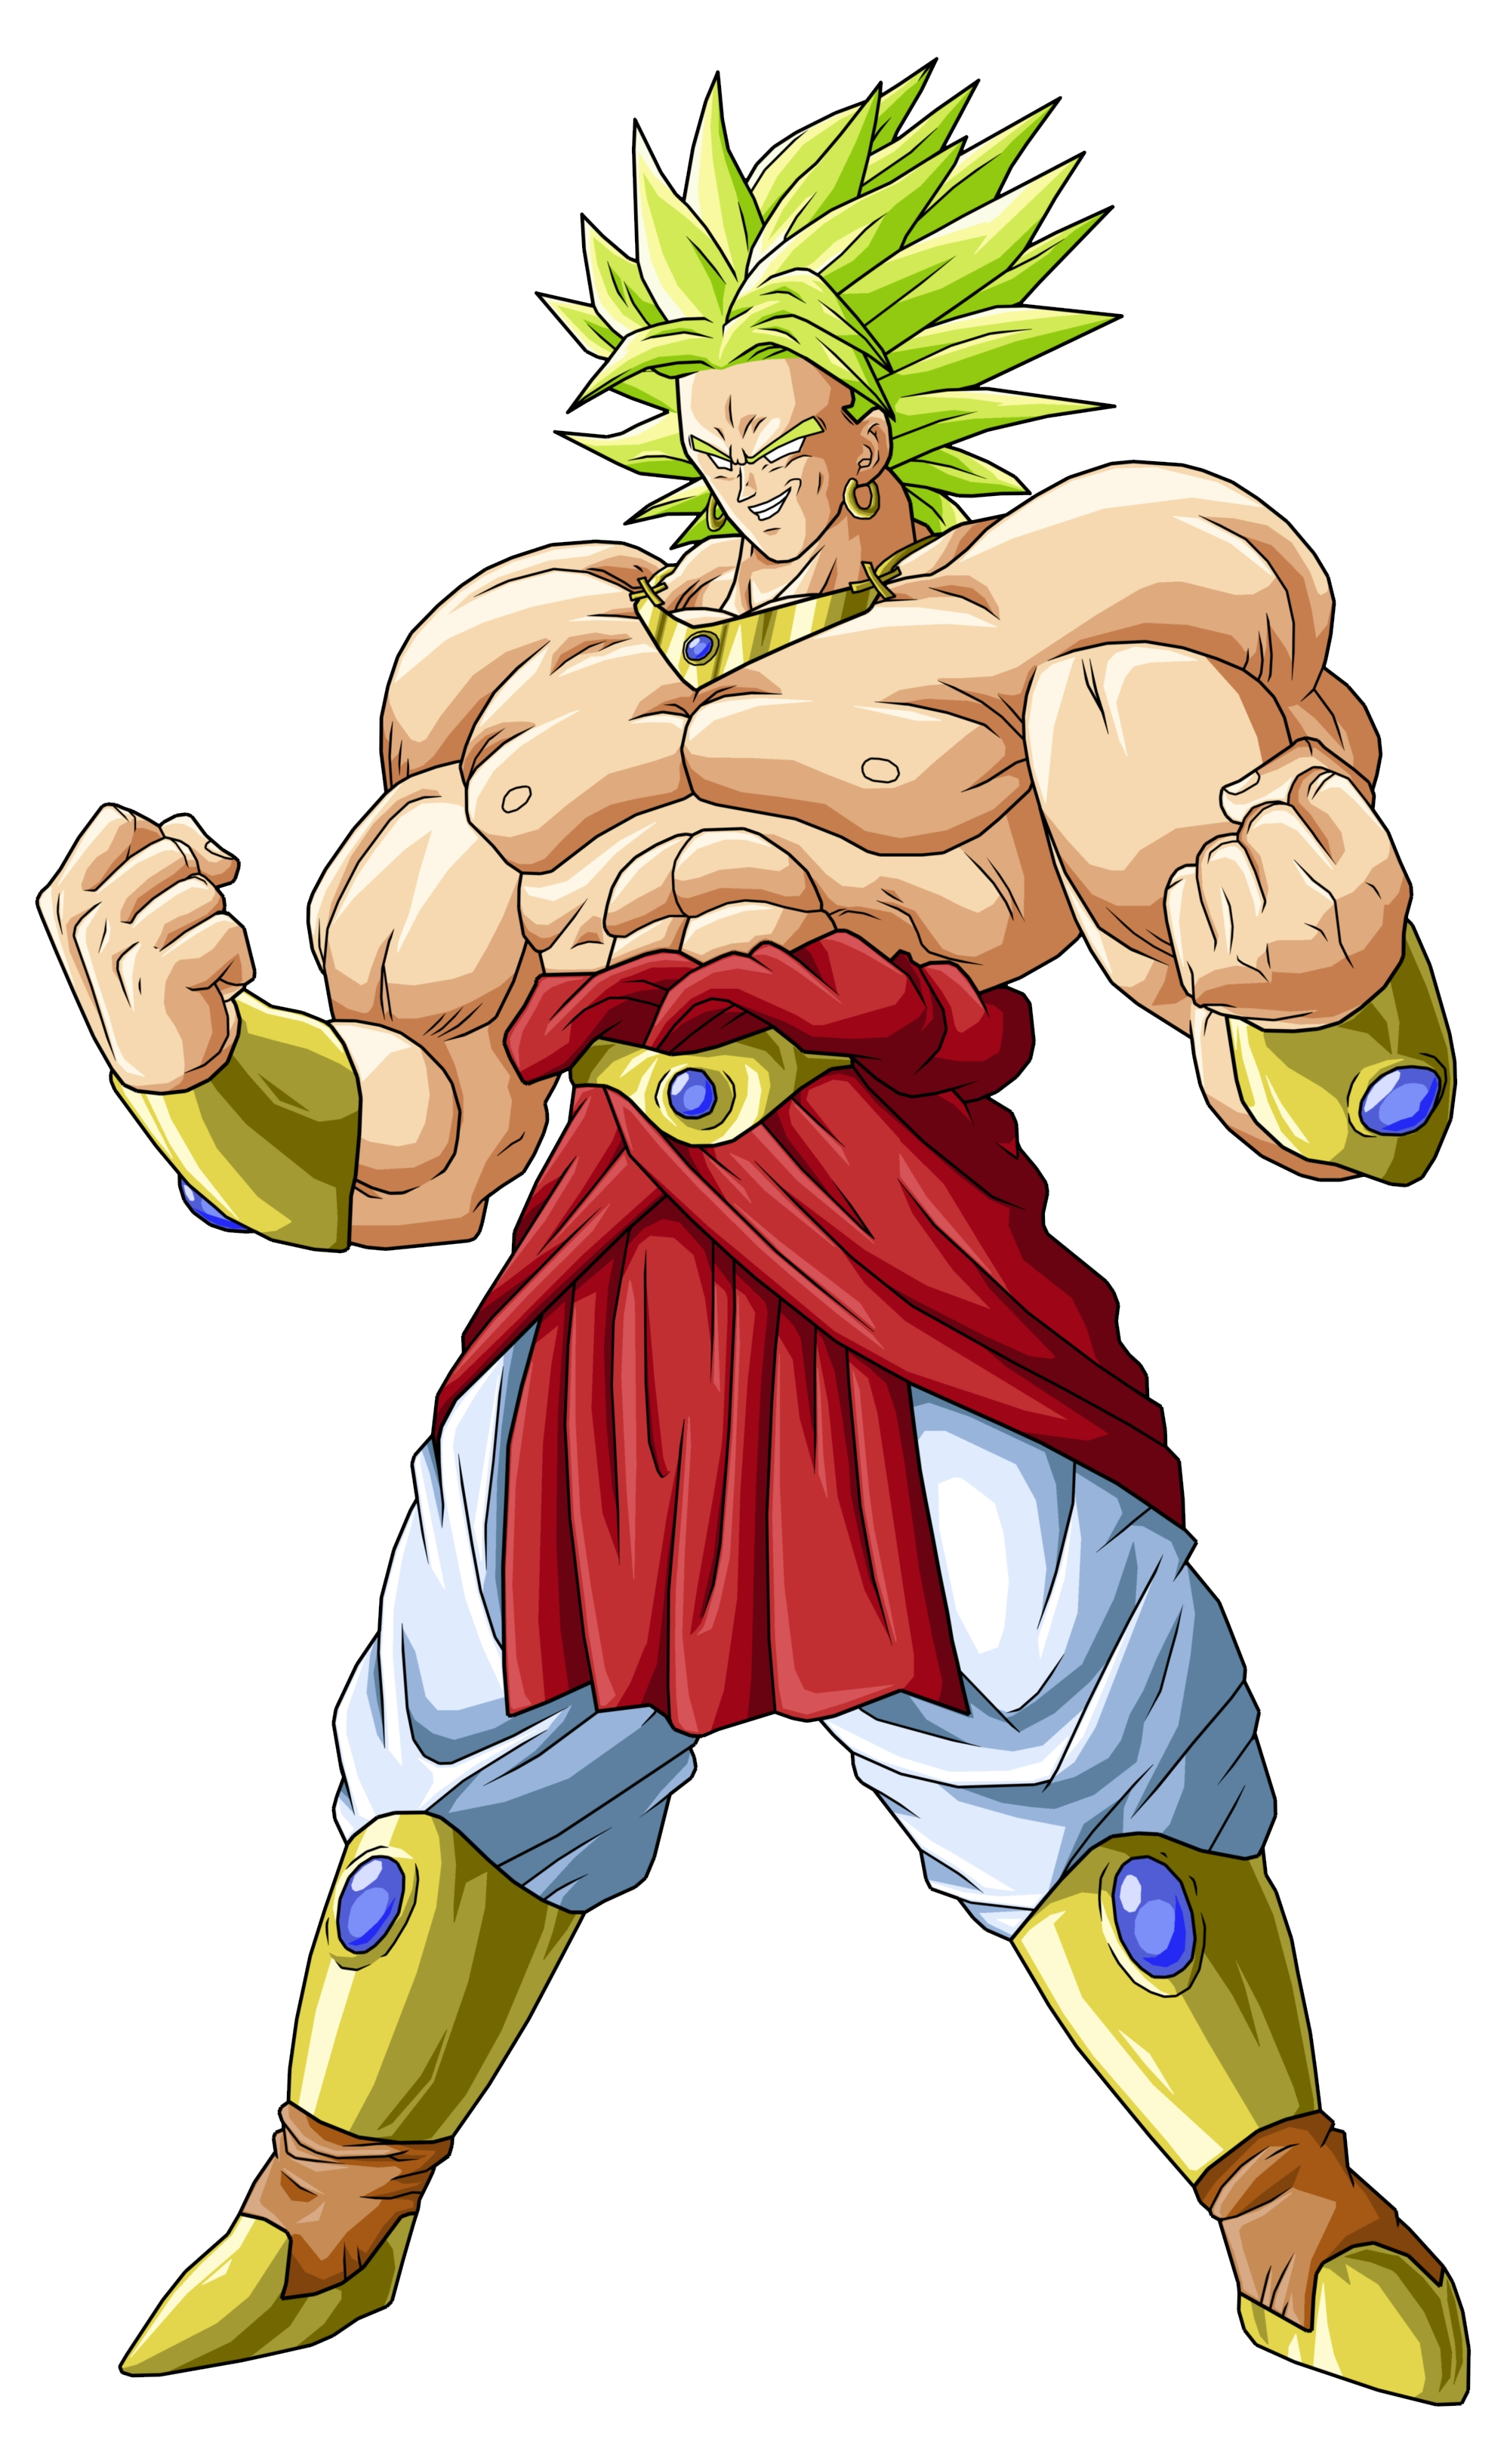 Broly dragon ball png. Image lssj power levels